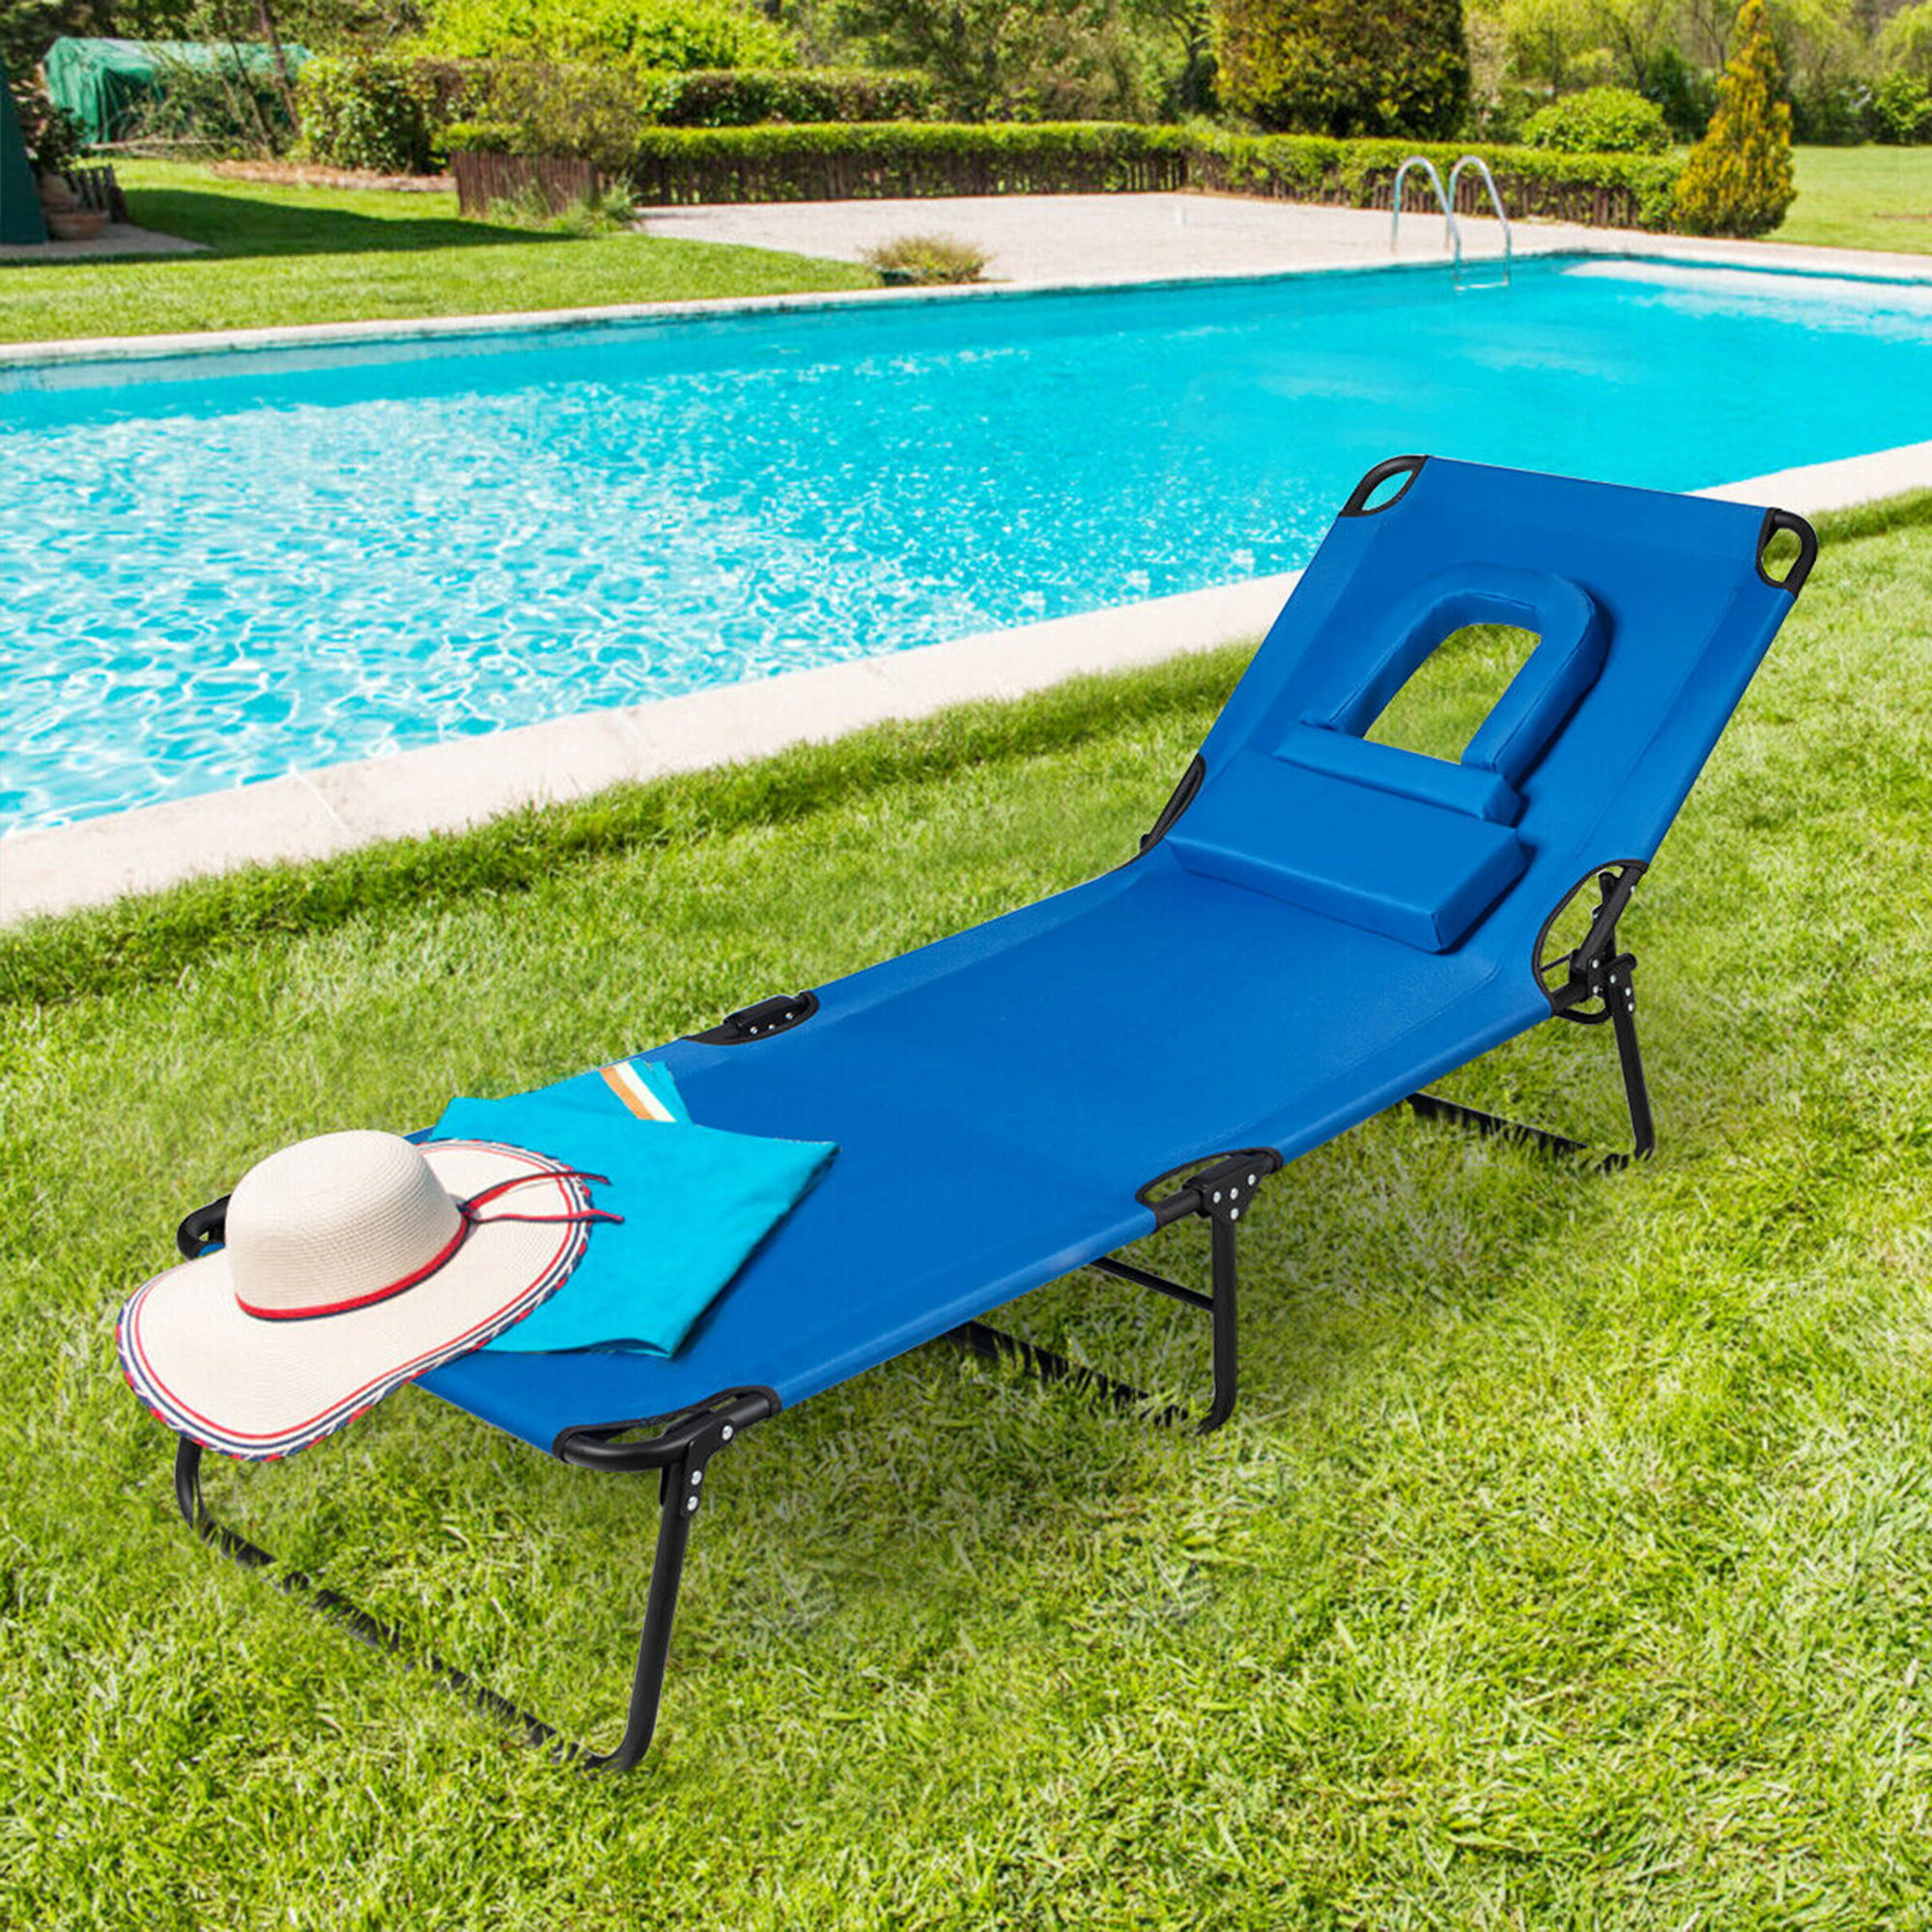 Adjustable 4 Recliner Positions Steel Frame Oxford Folding Camping Bed Cot with Removable Pillow for Outdoor Camping Sunbathing Beach Pool Garden Yard Portable Folding Chaise Lounge Chair Blue